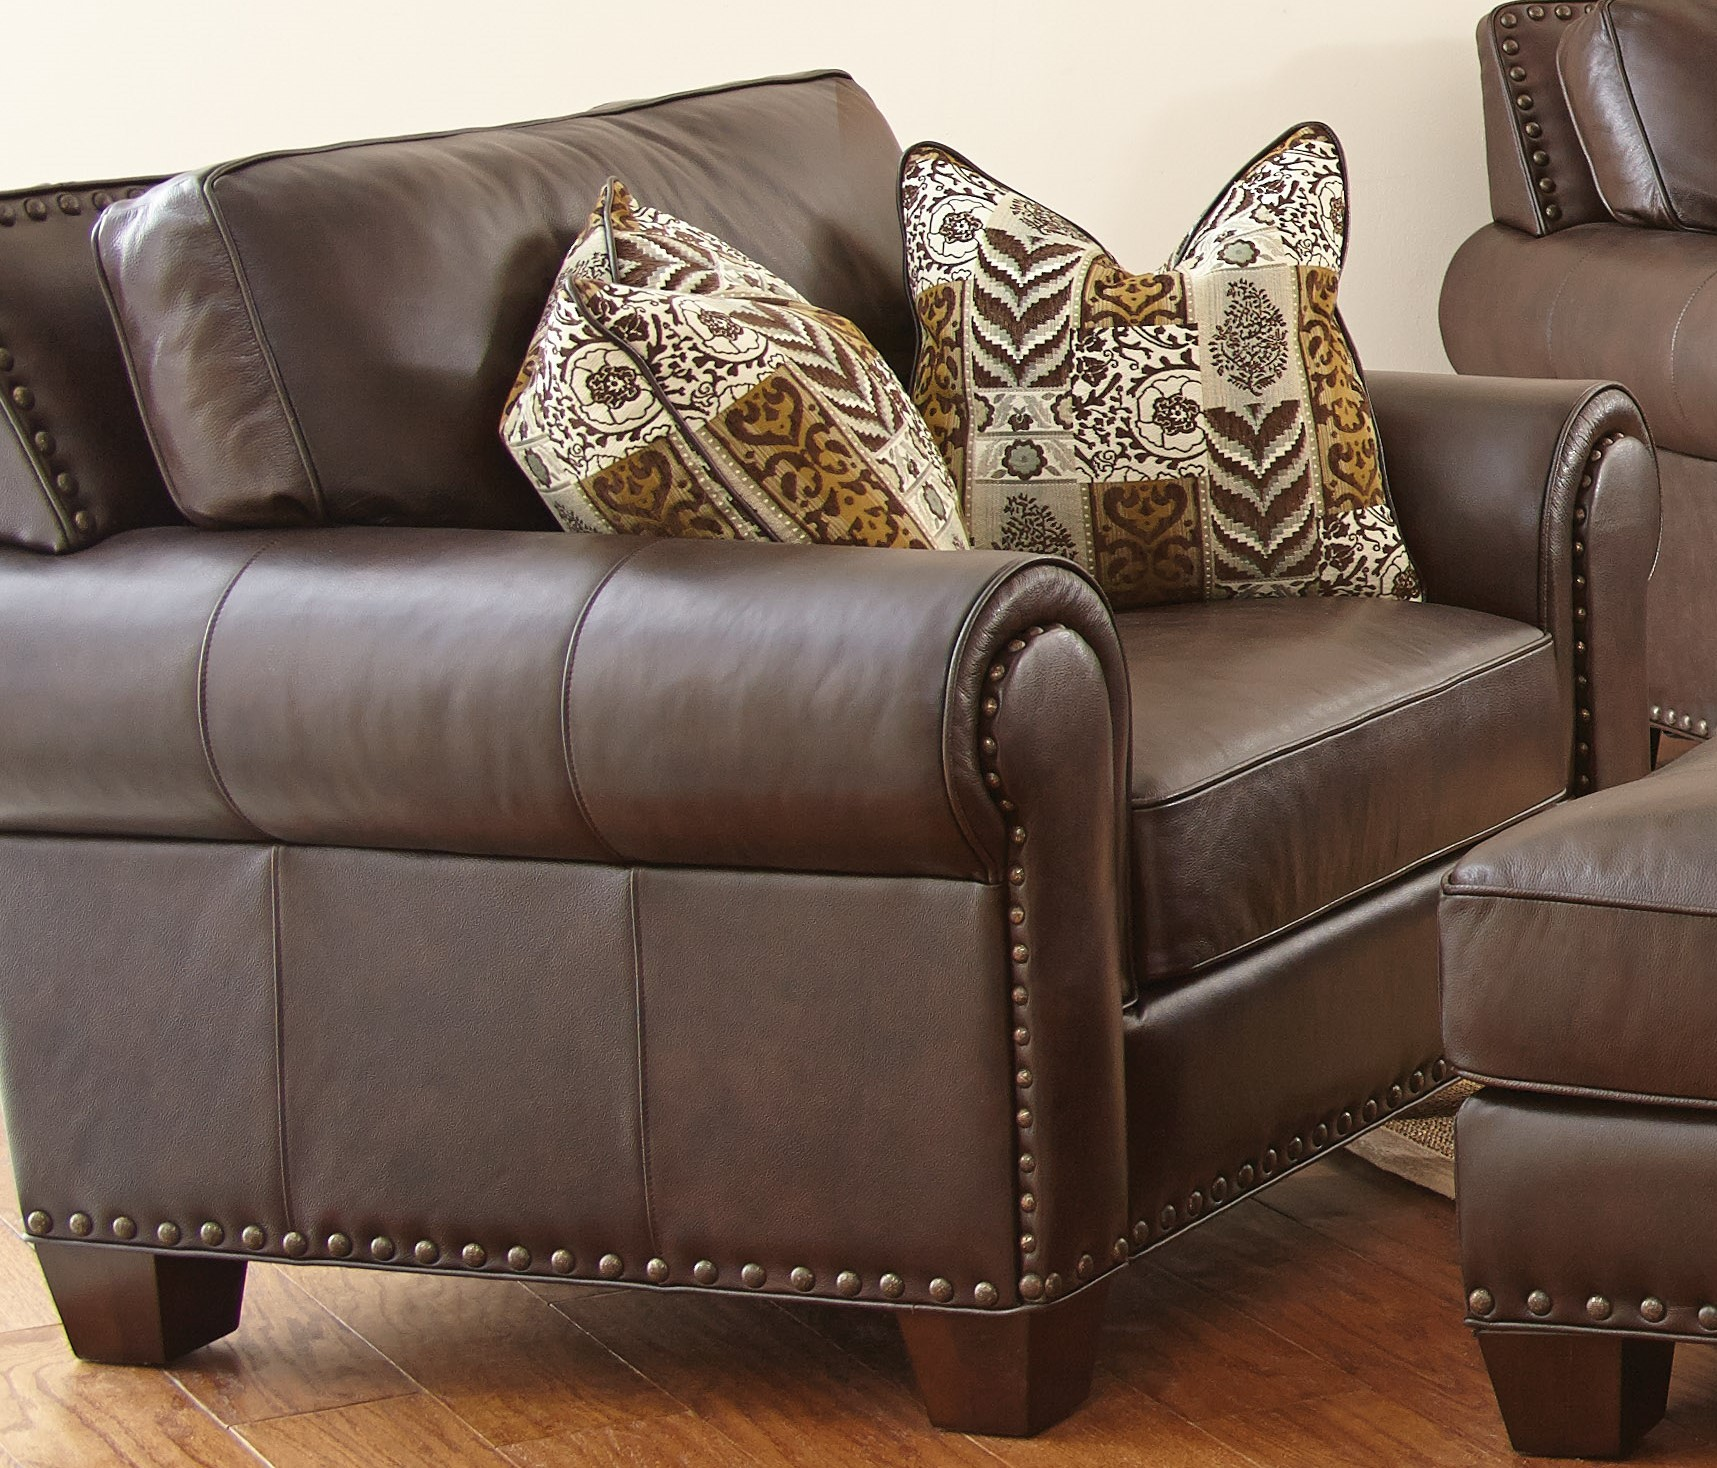 Leather Sofa For Accent Pillows: Escher Top Grain Leather Chair With 2 Accent Pillows From